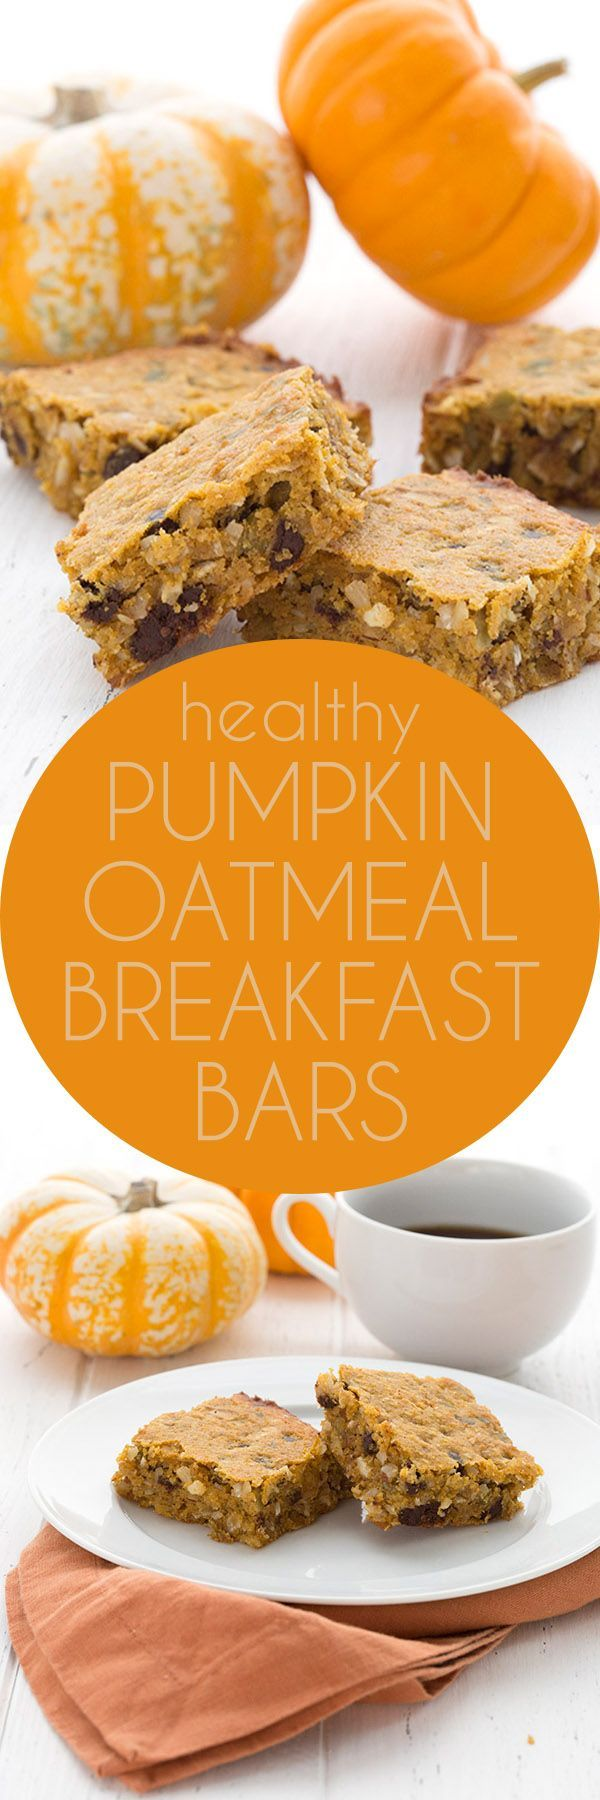 These low carb Pumpkin Chocolate Chip Breakfast Bars have an oatmeal texture that everyone loves! #lowcarb #pumpkinrecipes #keto